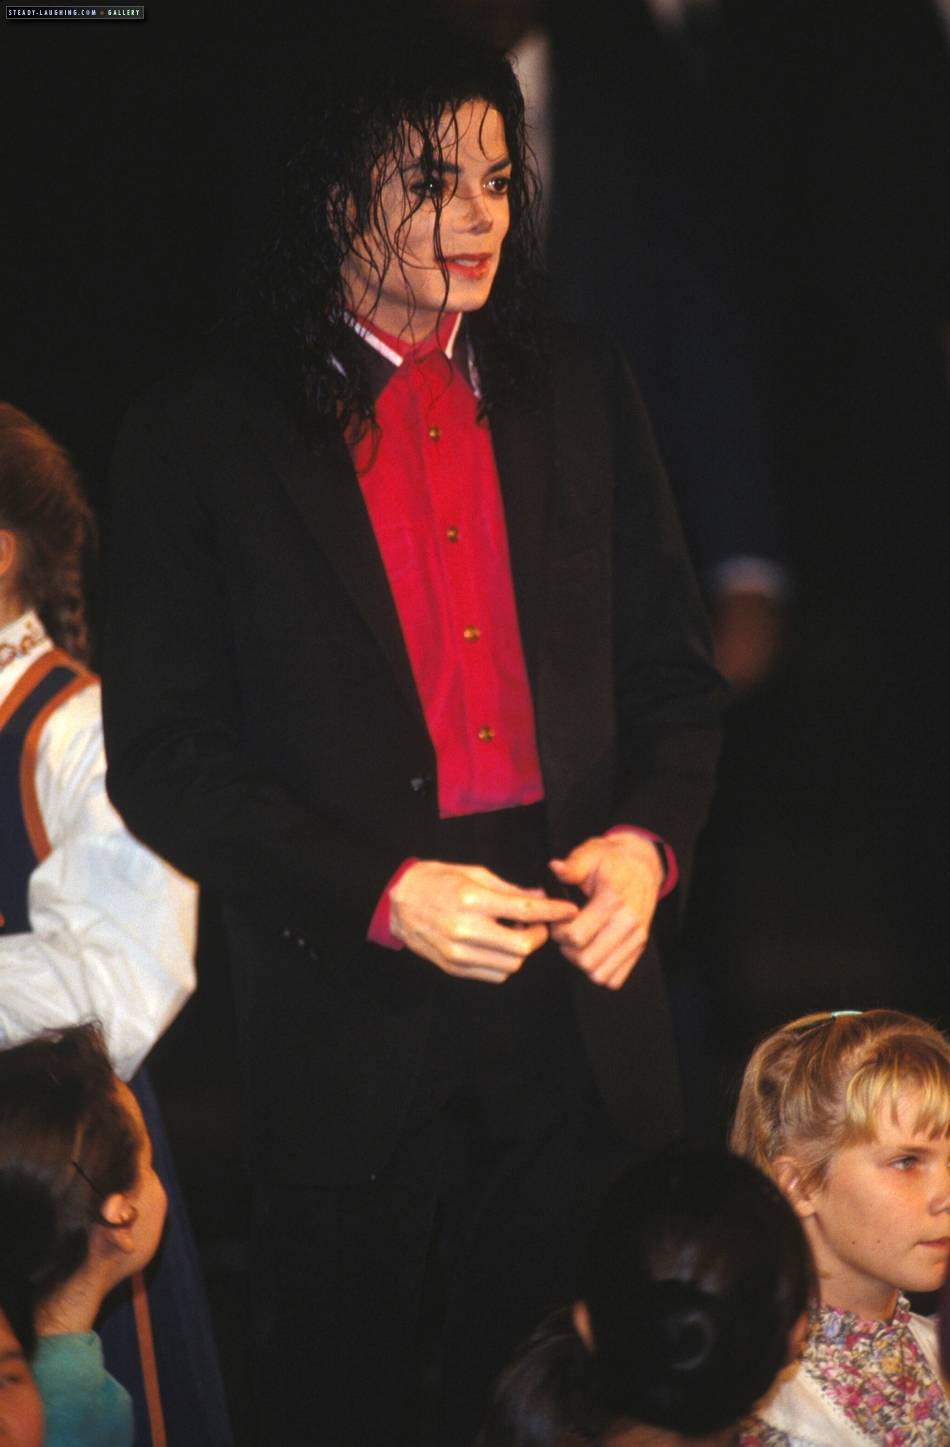 I'M UNDER YOUR SPELL MICHAEL BABY